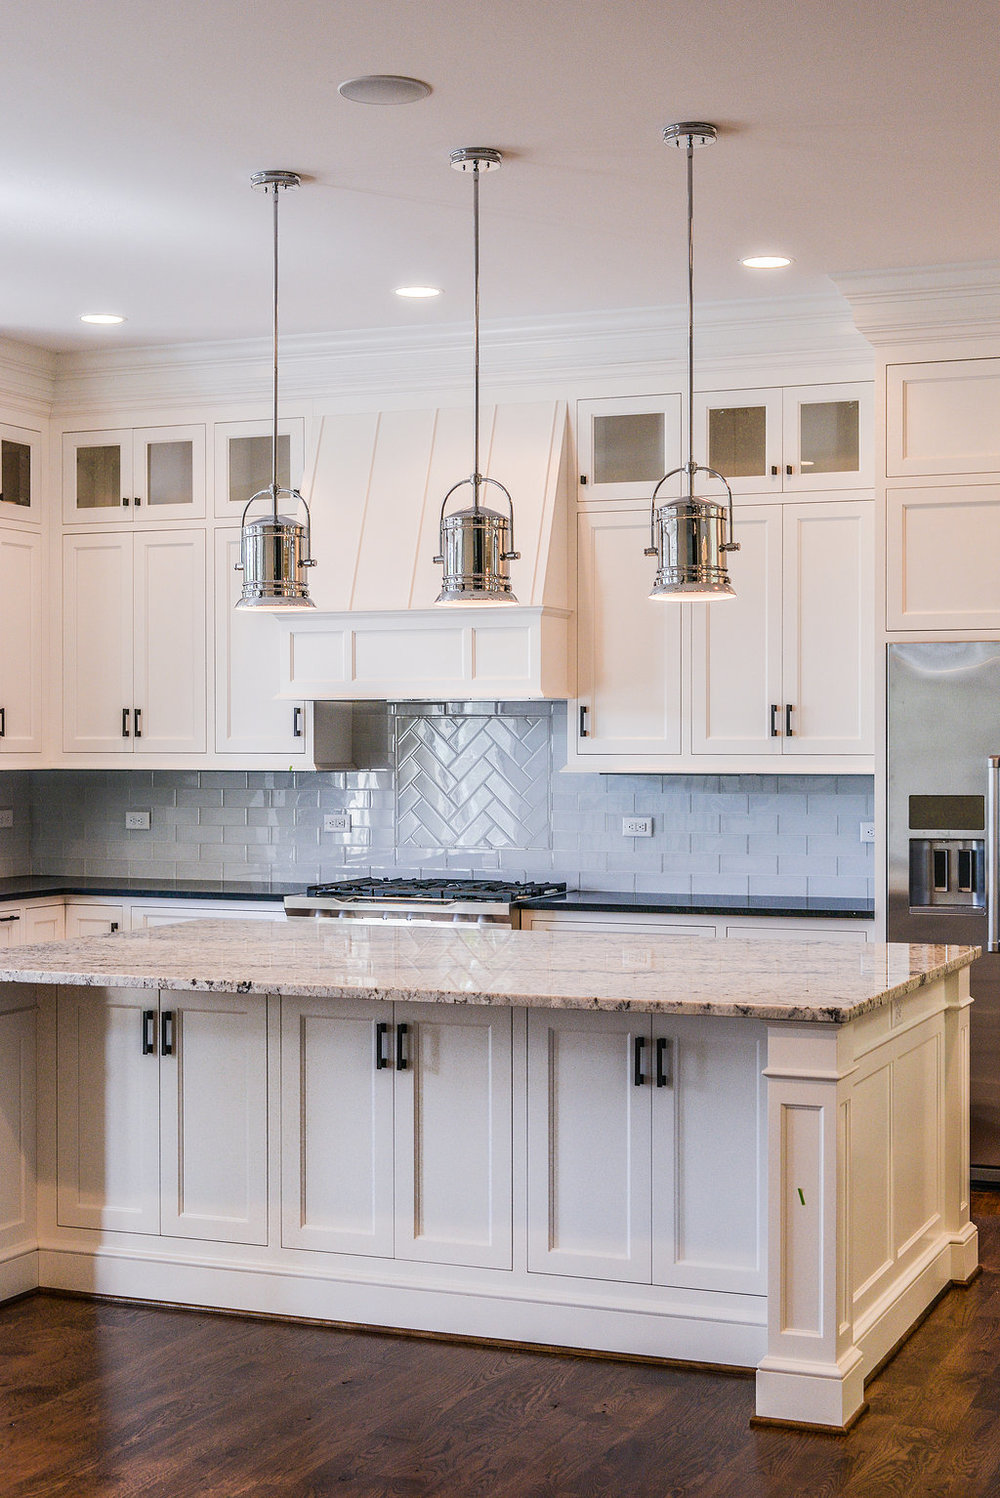 Carrera marble counterops,  professional grade appliances, and custom cabinets by Martin Star